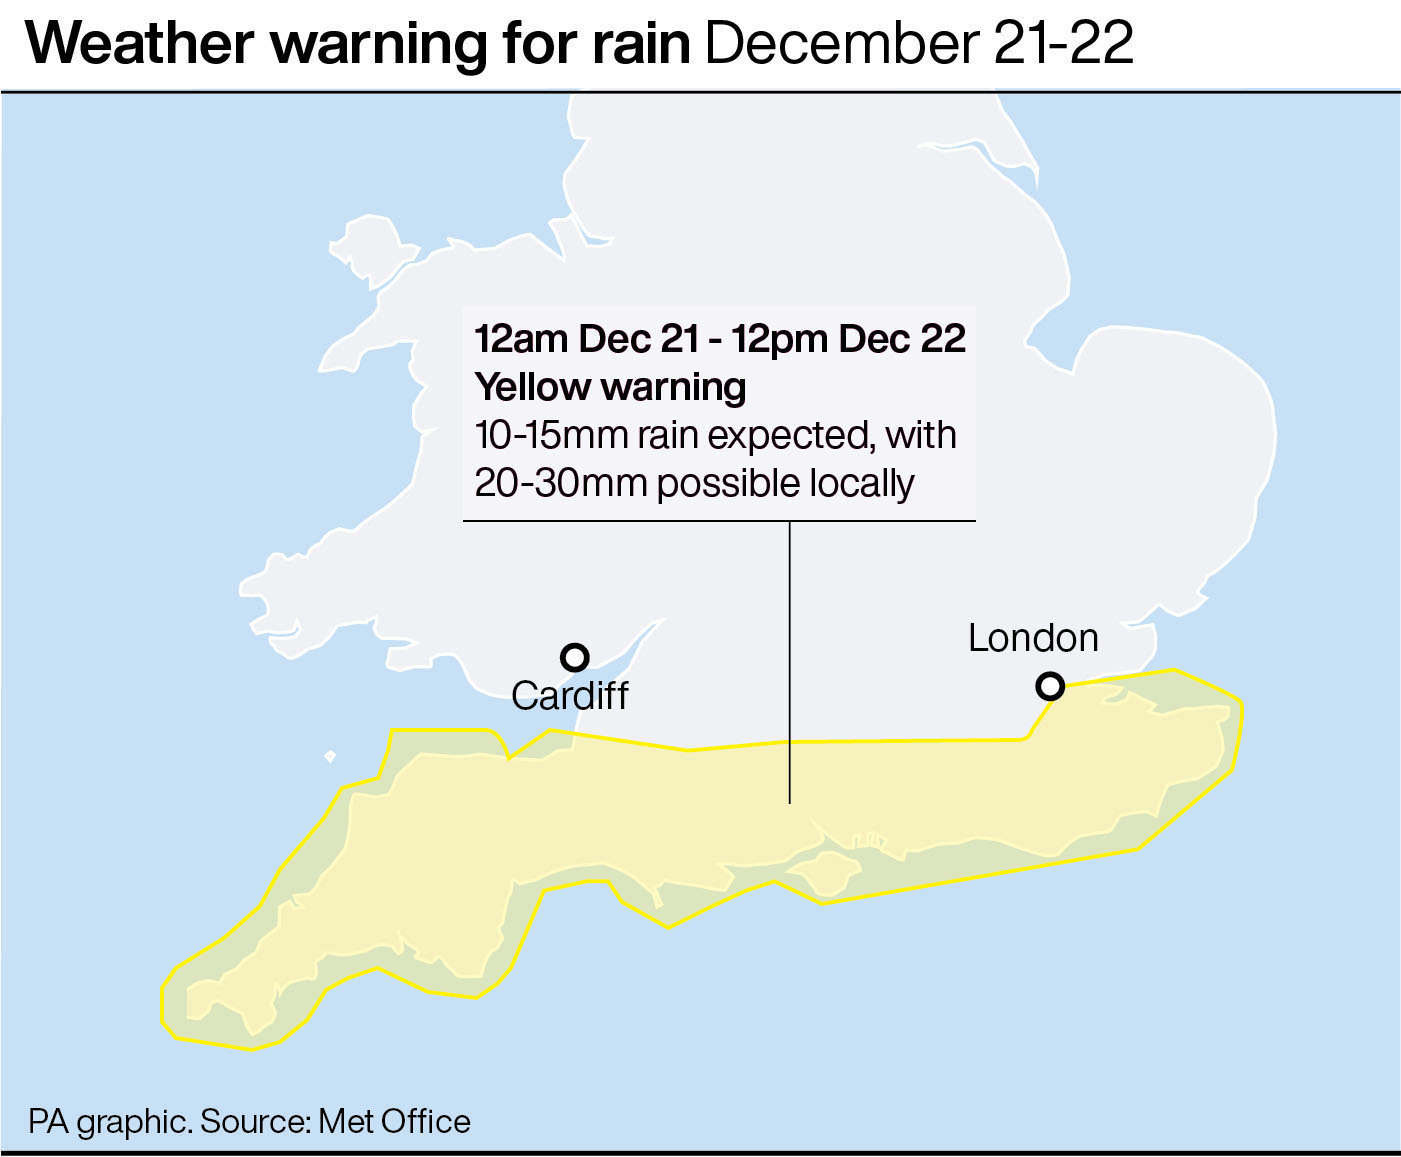 More than 90 flood warnings issued due to severe weather